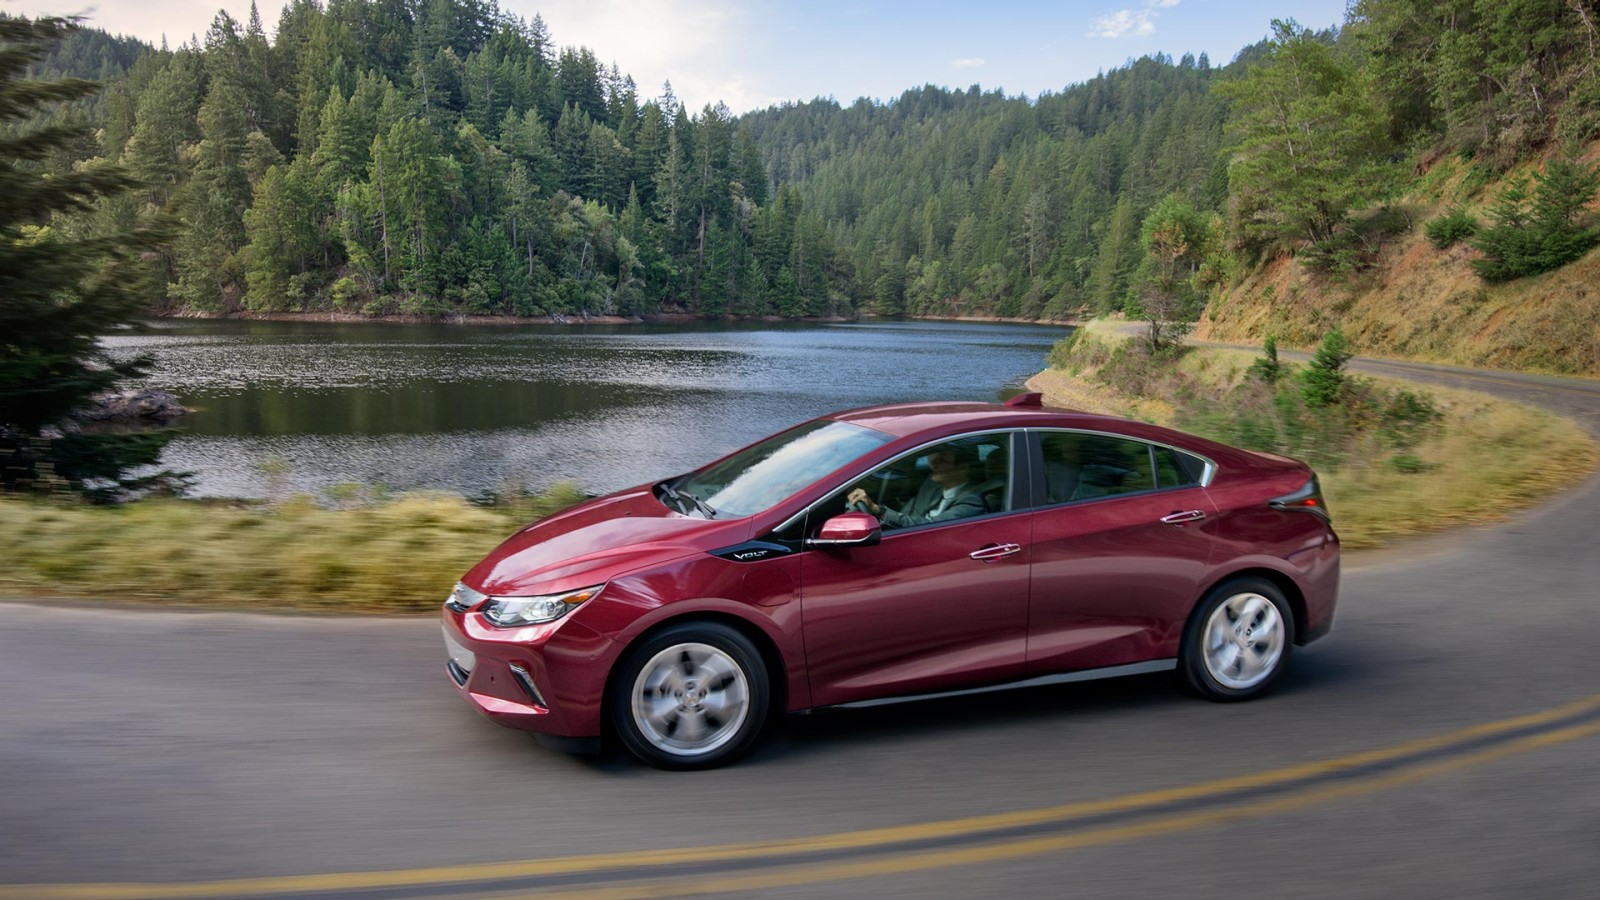 pricing review sale for in edmunds volt features used chevrolet